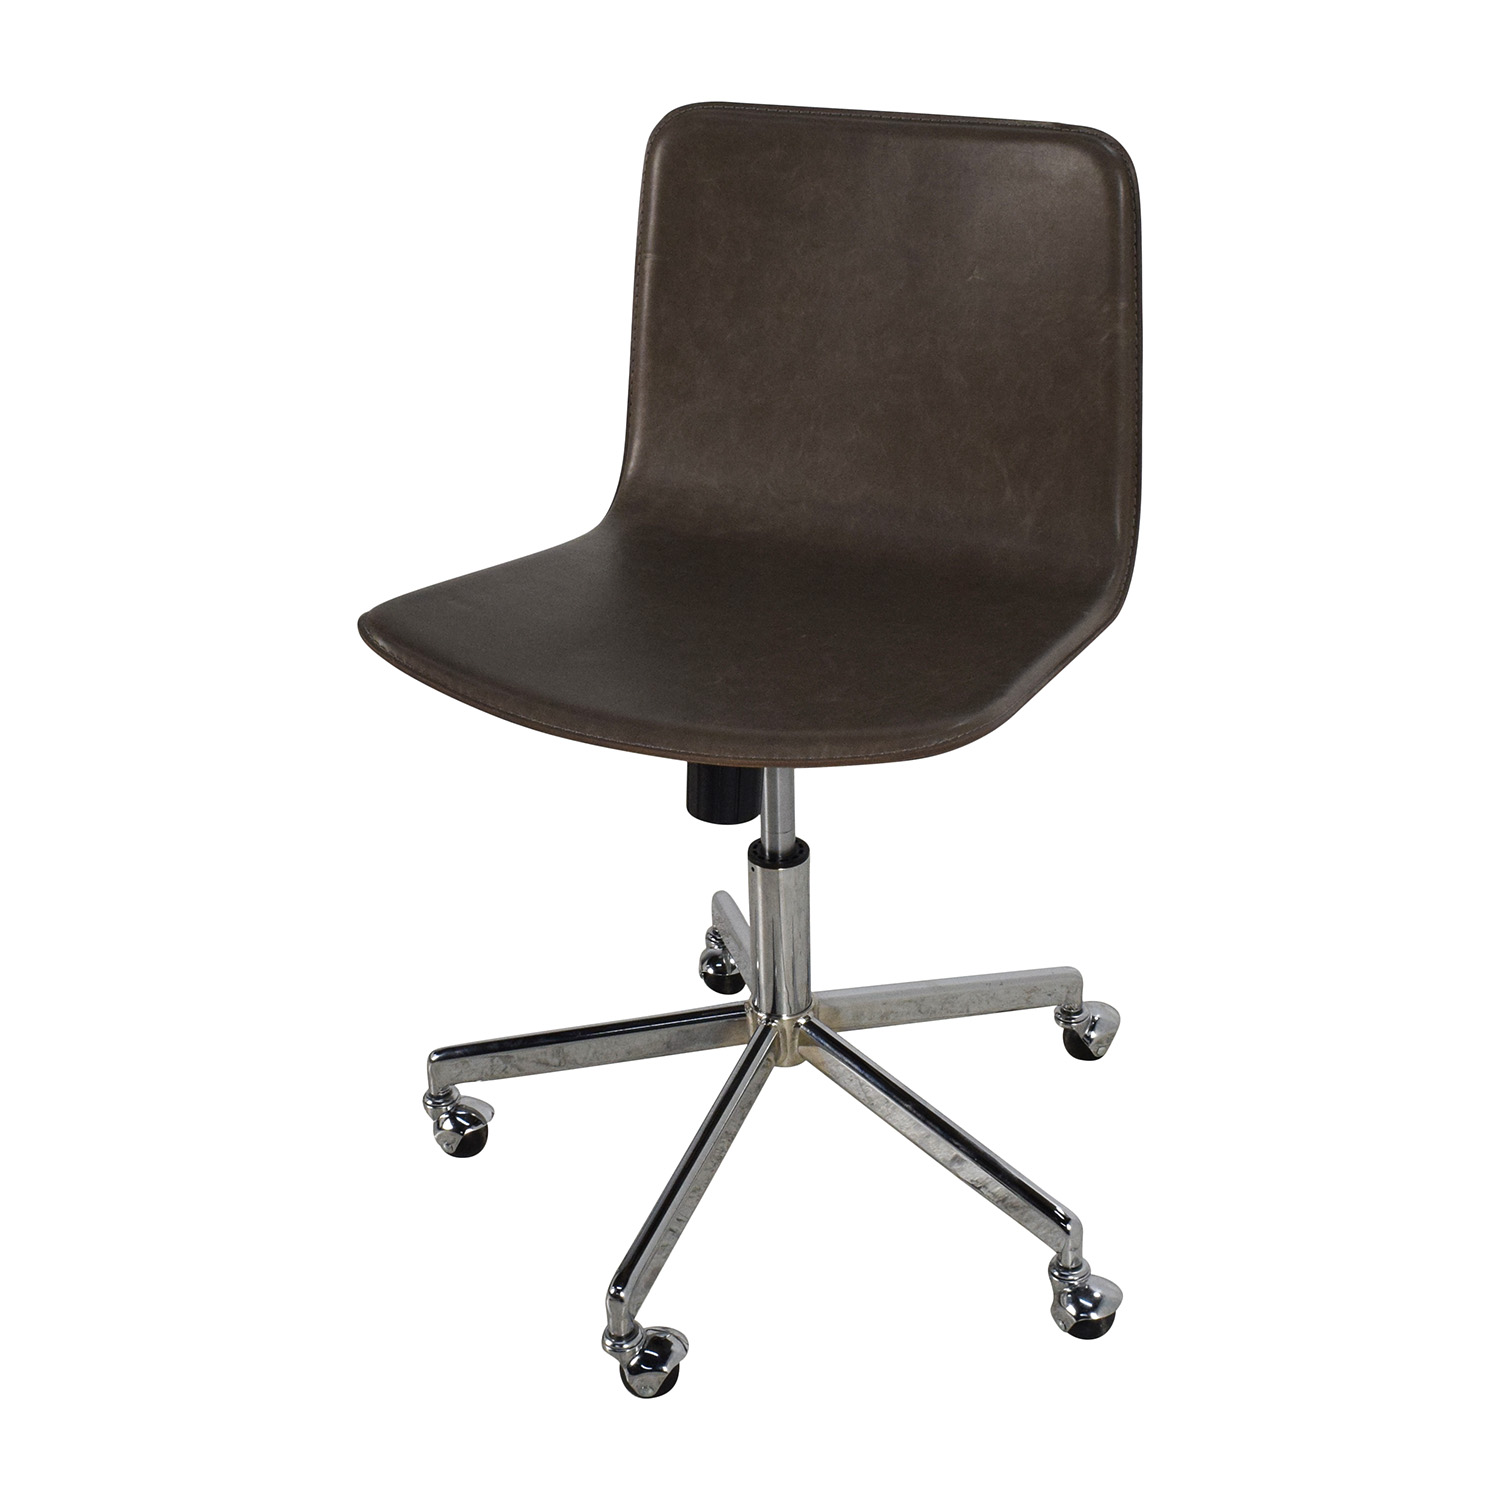 70 Off Cb2 Cb2 Stratum Office Chair Chairs